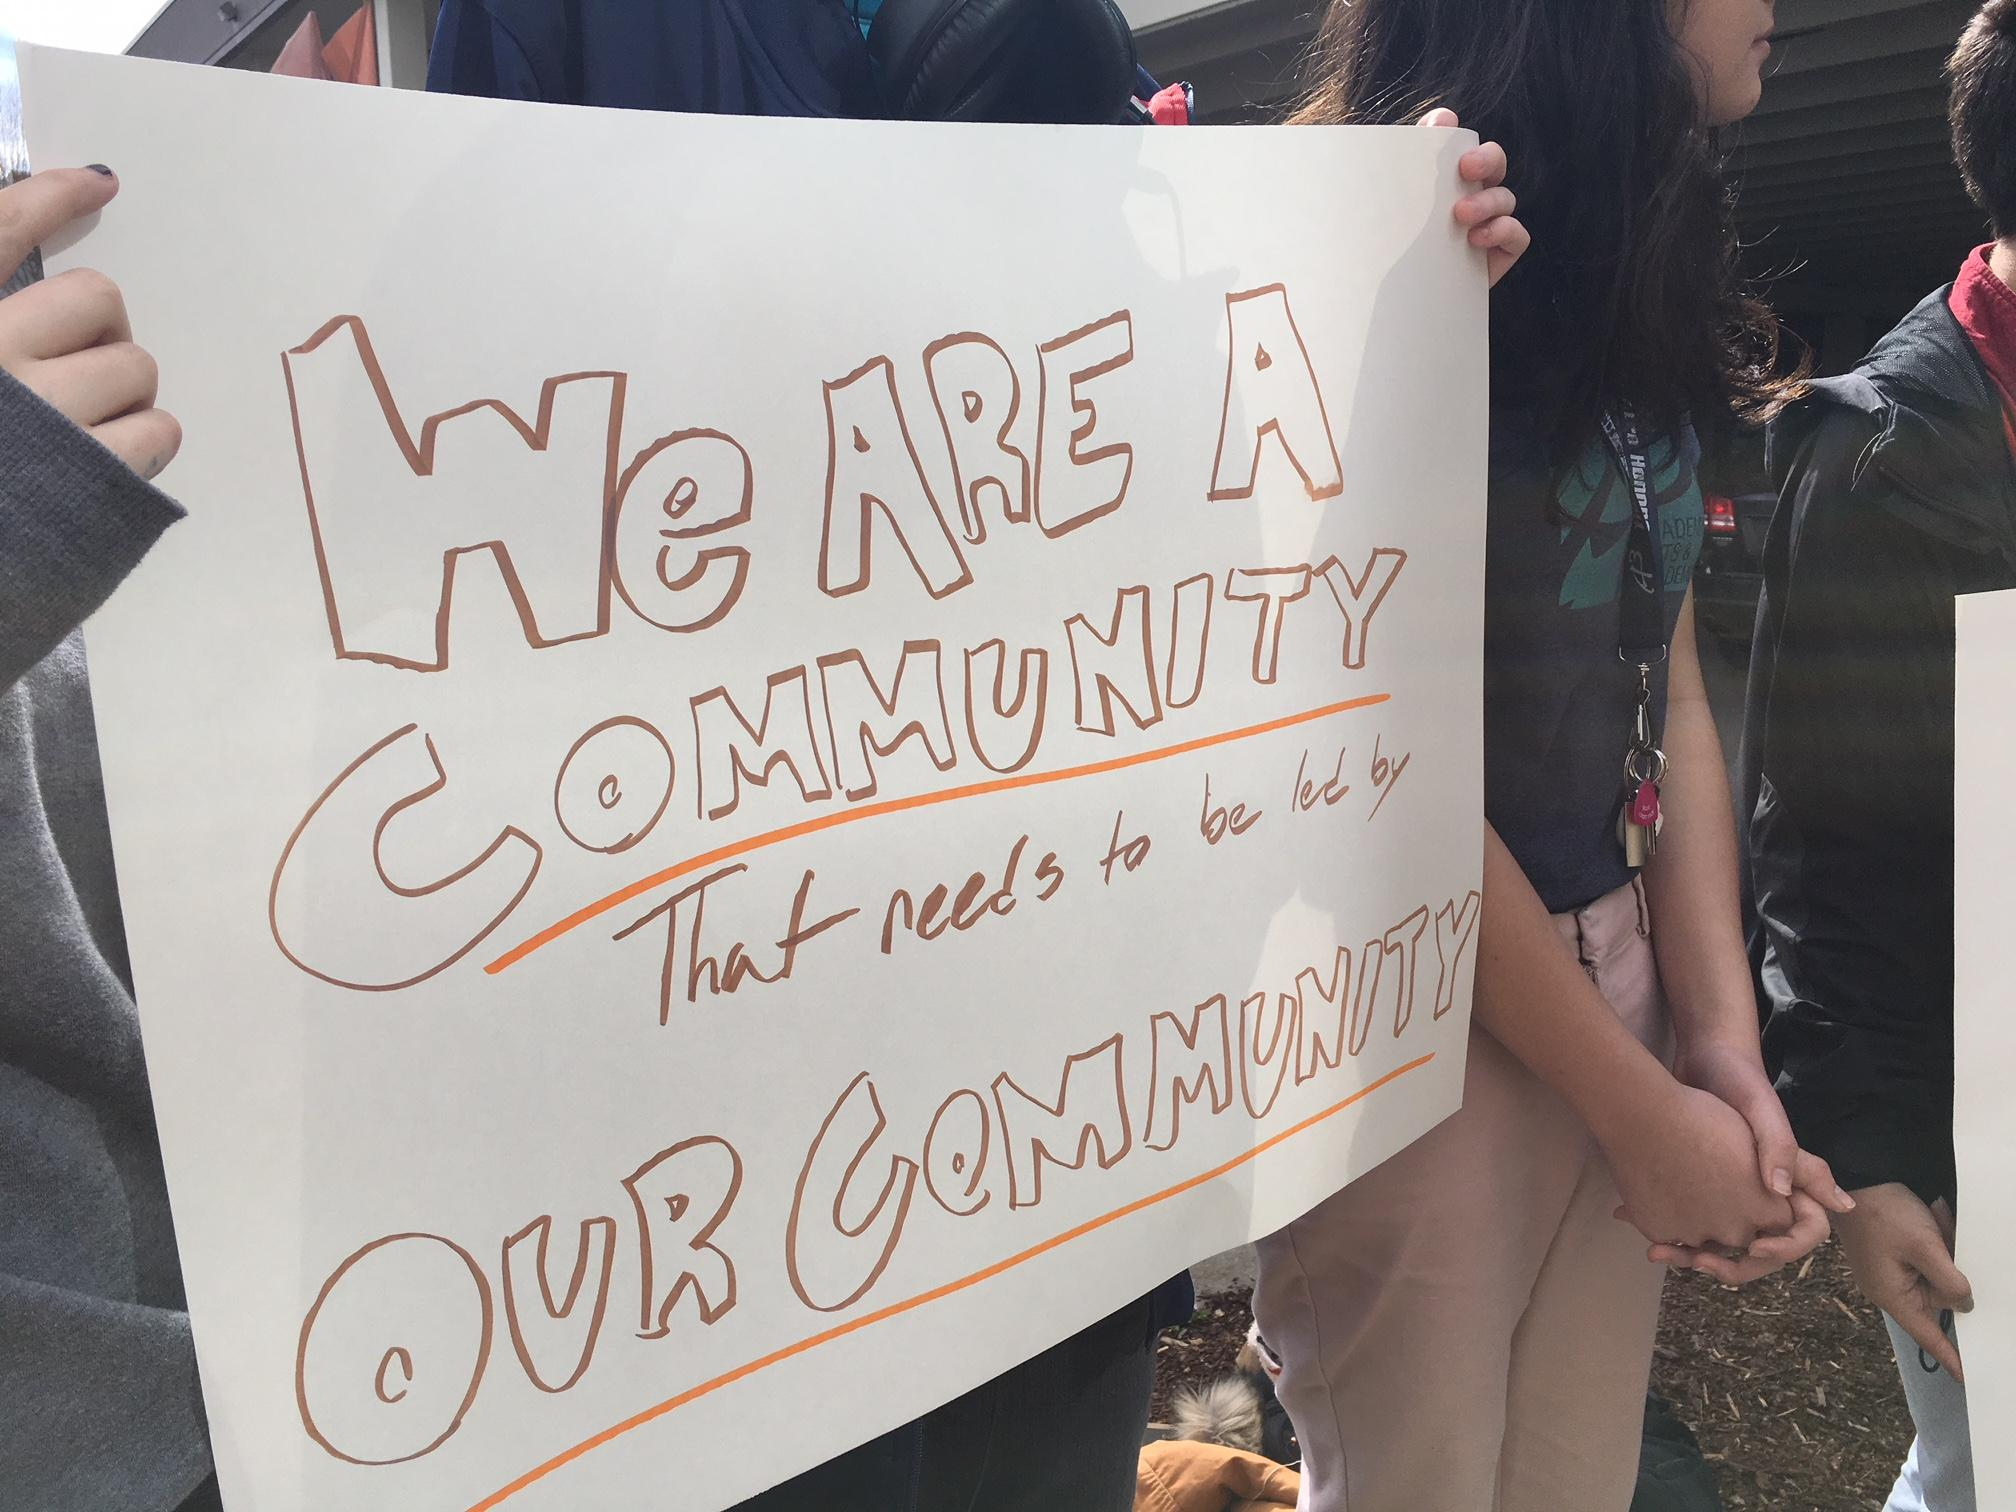 Students from the Academy of Arts and Academics in Springfield held a protest outside the Springfield School District, voicing their concerns about the district's decision to revoke A3's charter on June 30. (SBG)